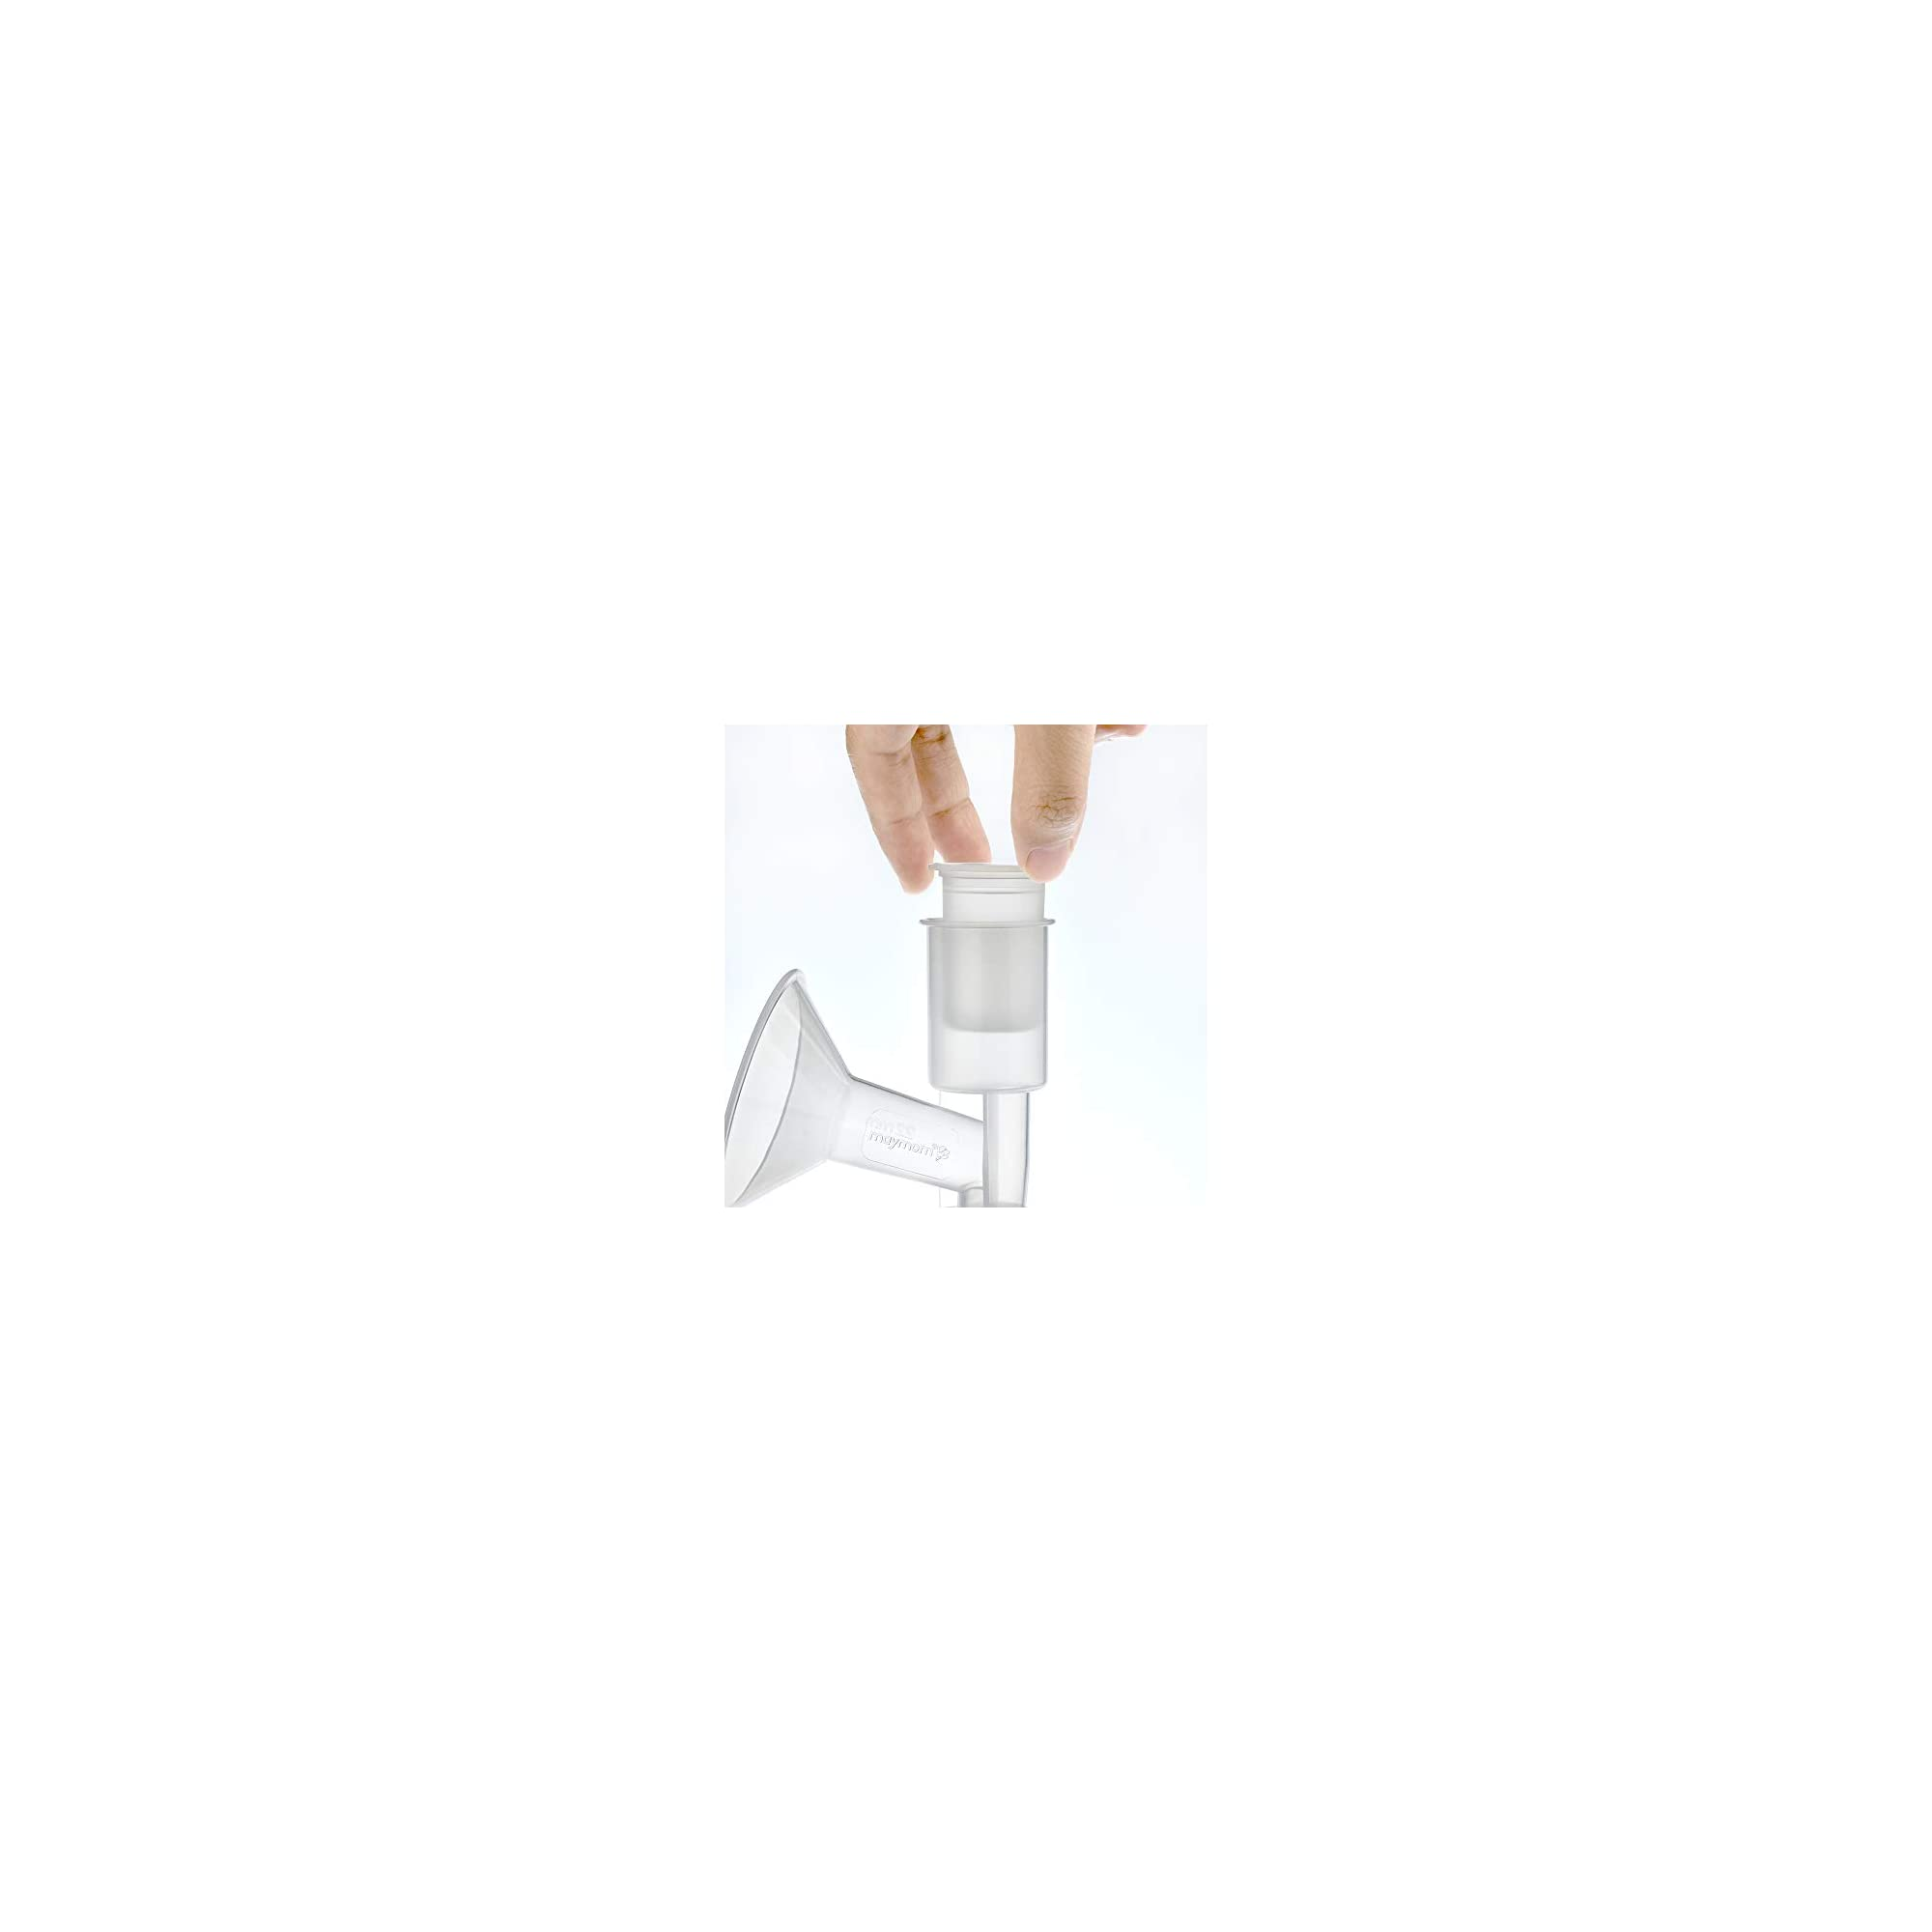 Replacement Silicone Diaphragms for Ameda Purely Yours Breastpump